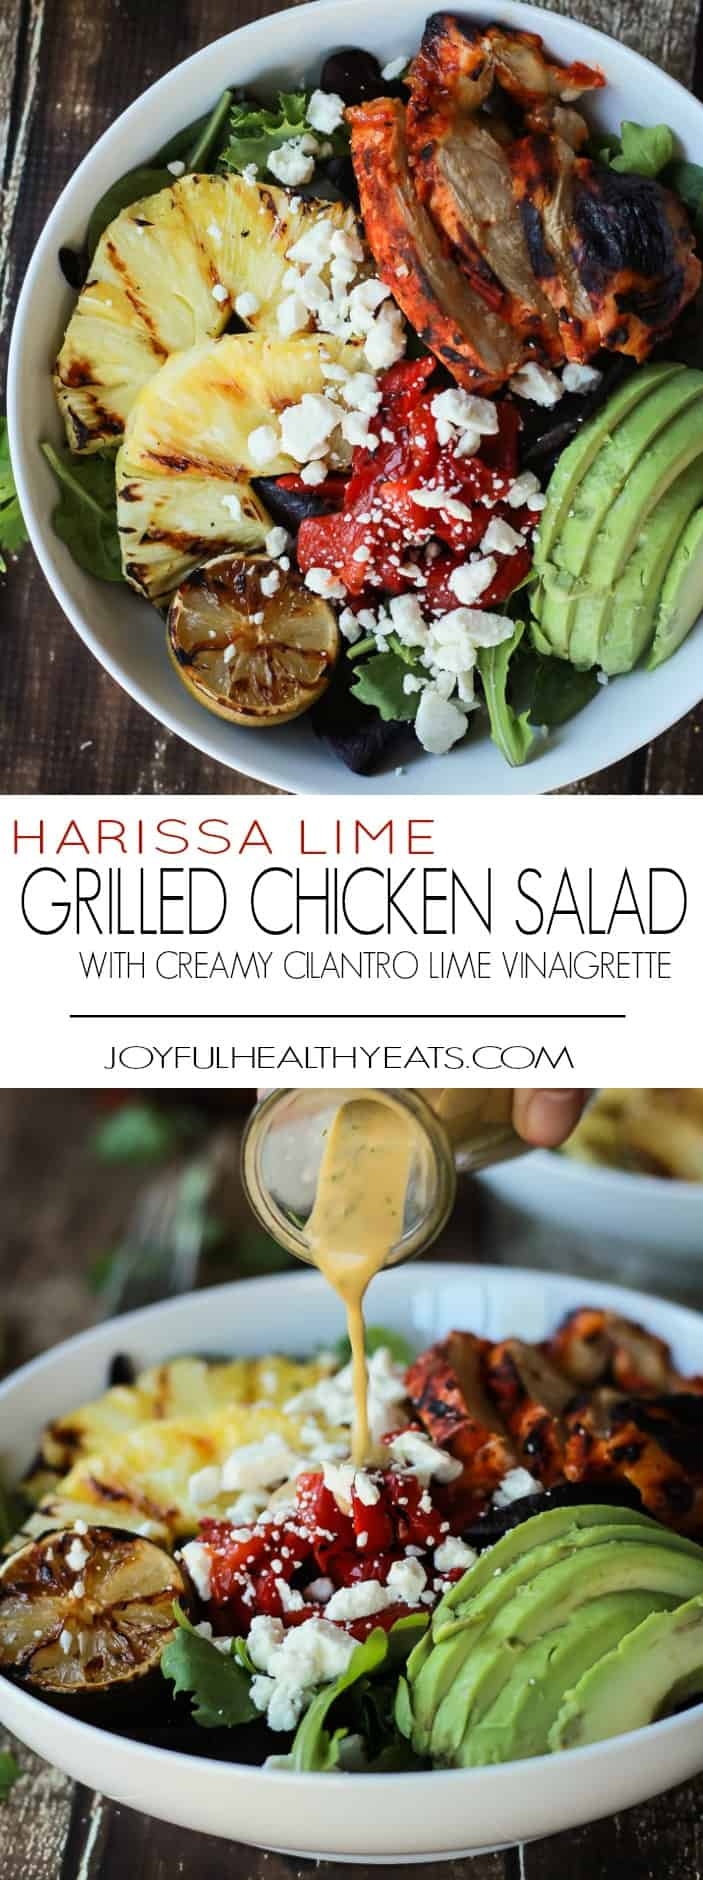 Recipe collage for Harissa Lime Grilled Chicken Salad with Creamy Cilantro Lime Vinaigrette